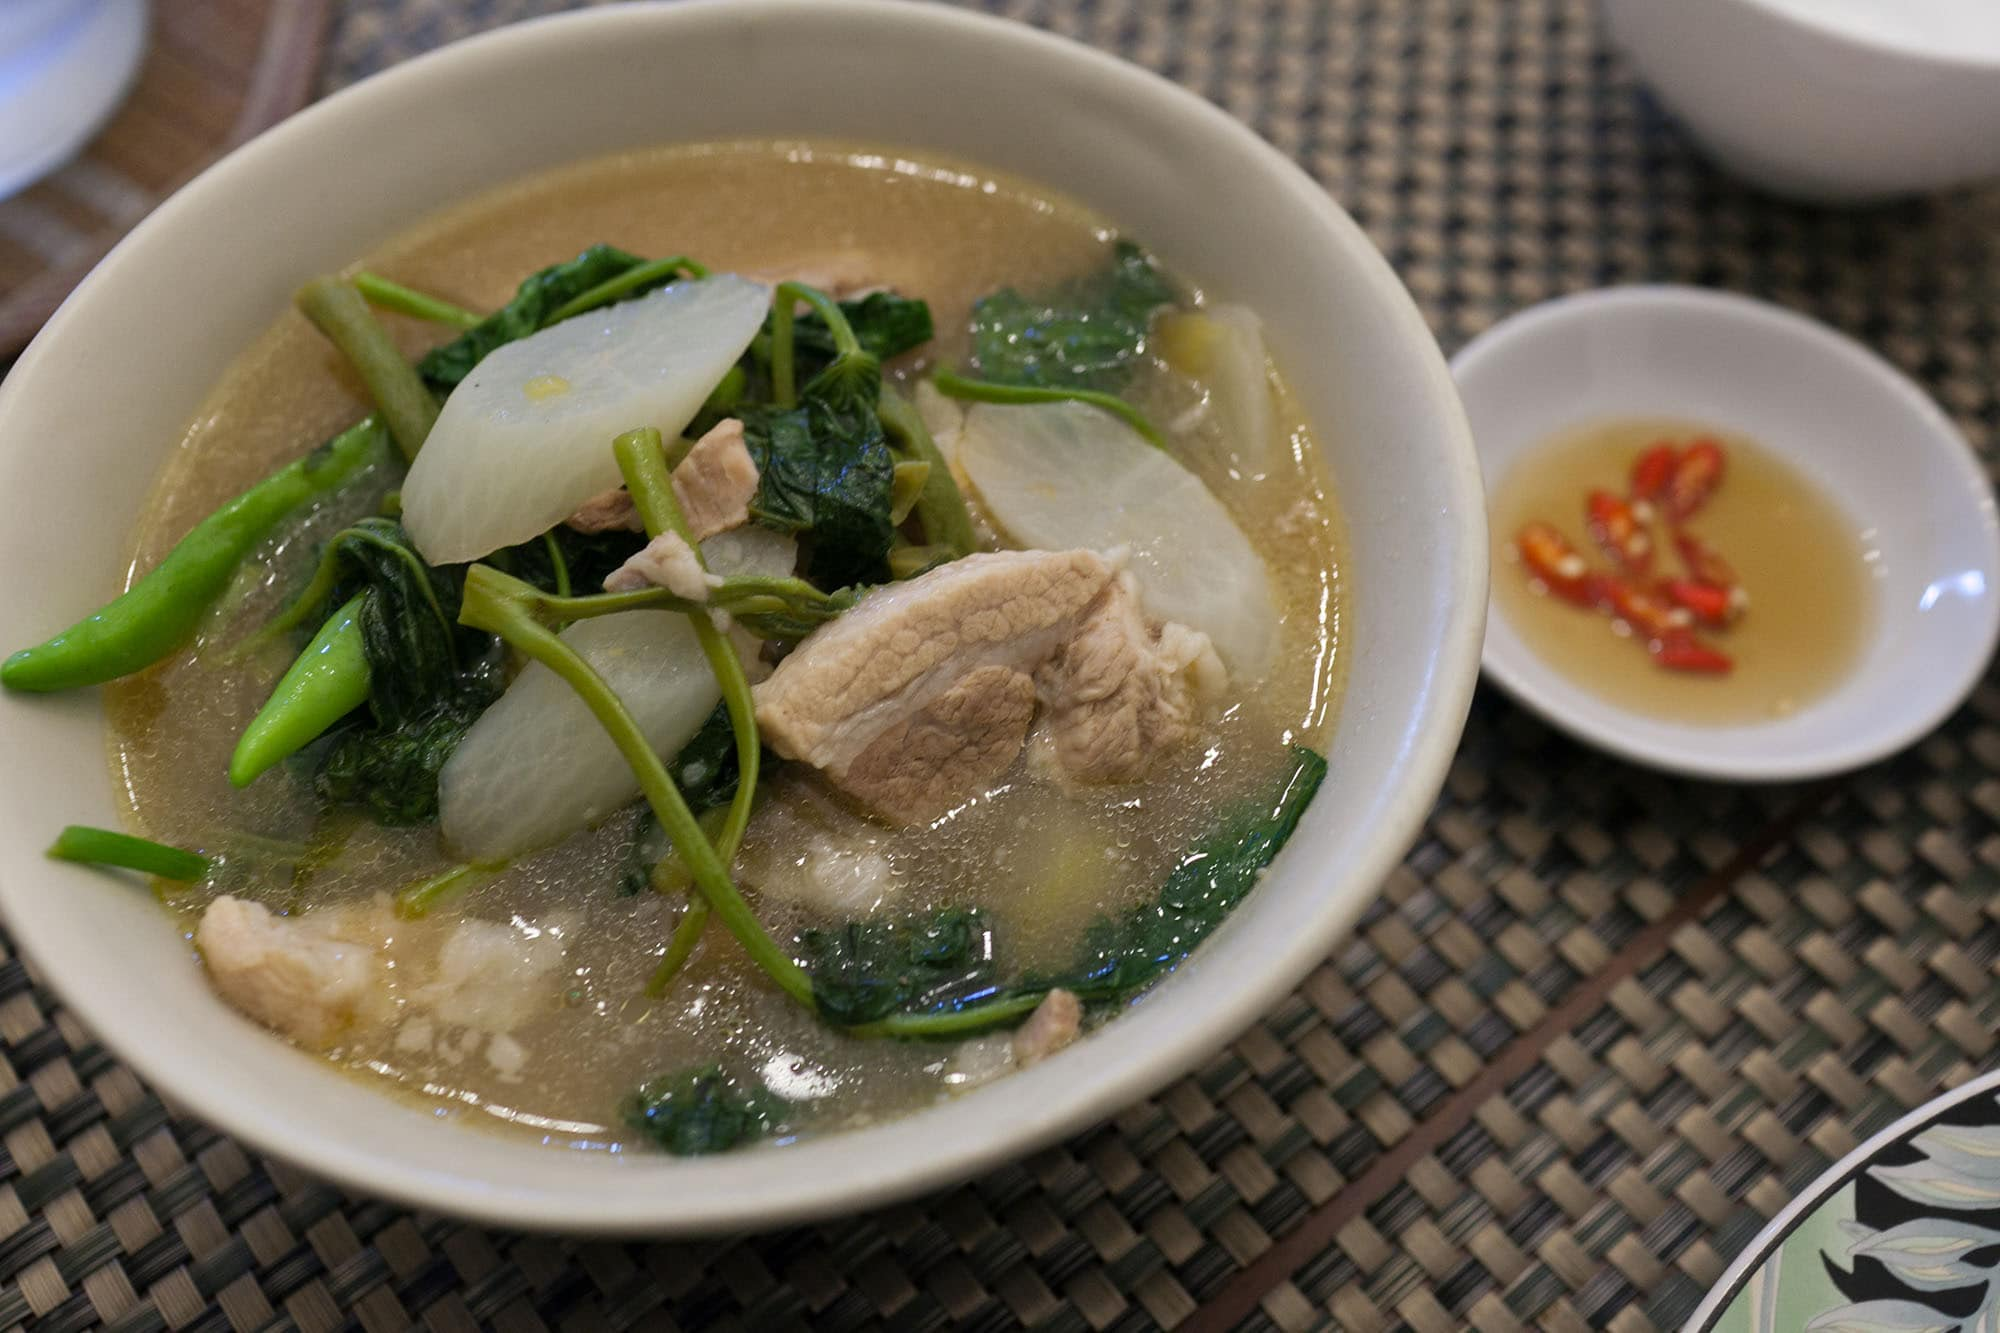 Sour pork soup from the Philippines.